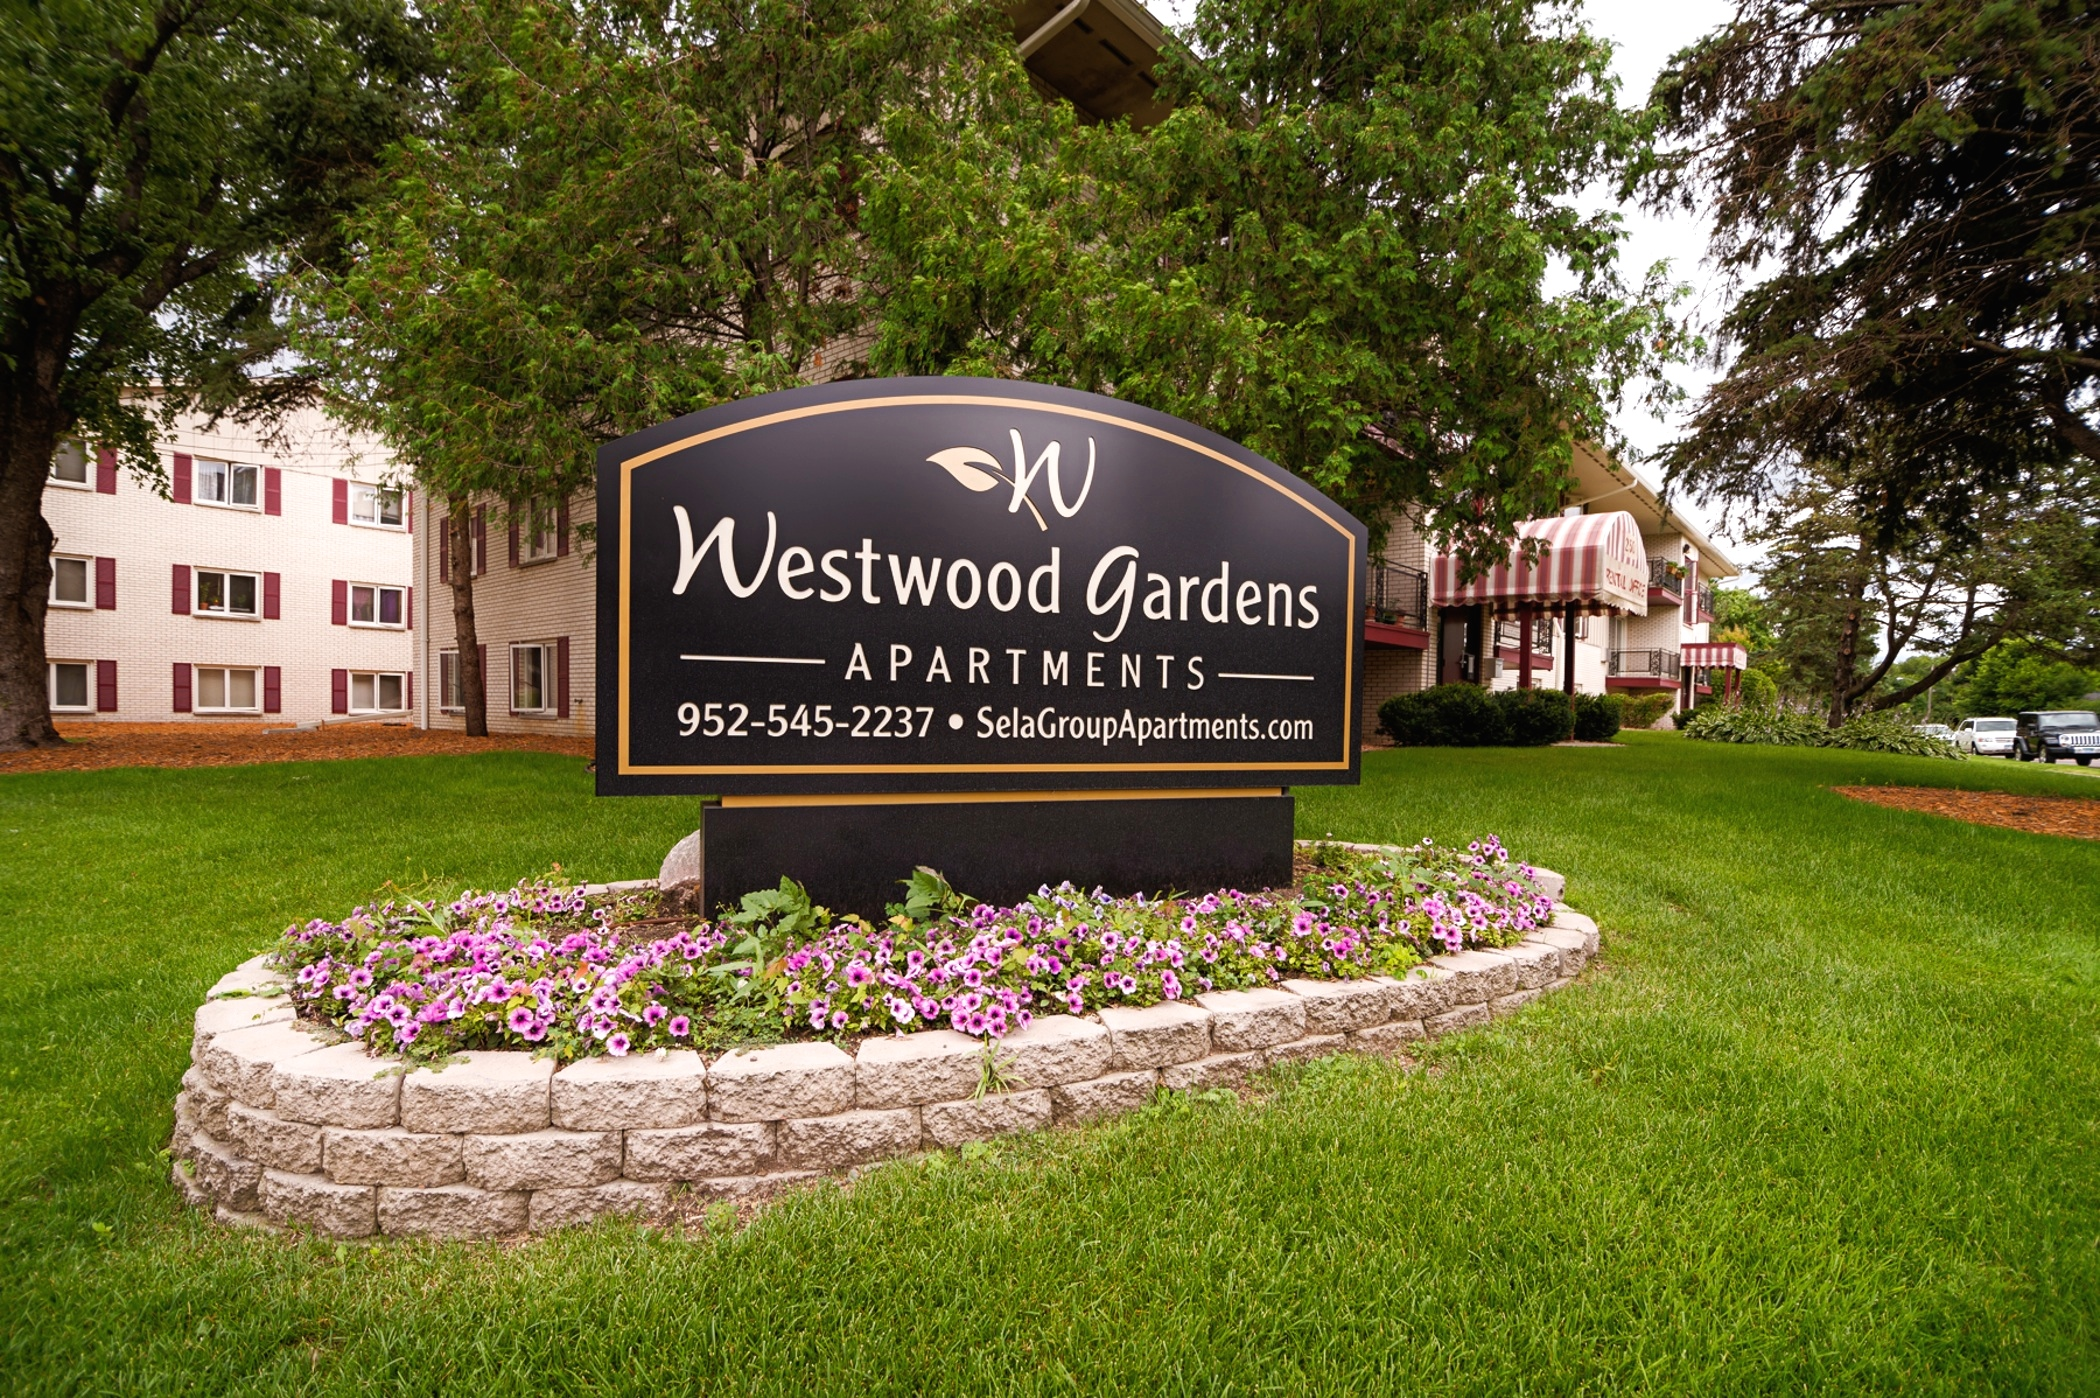 Westwood Gardens Sela Investments Sela Investments